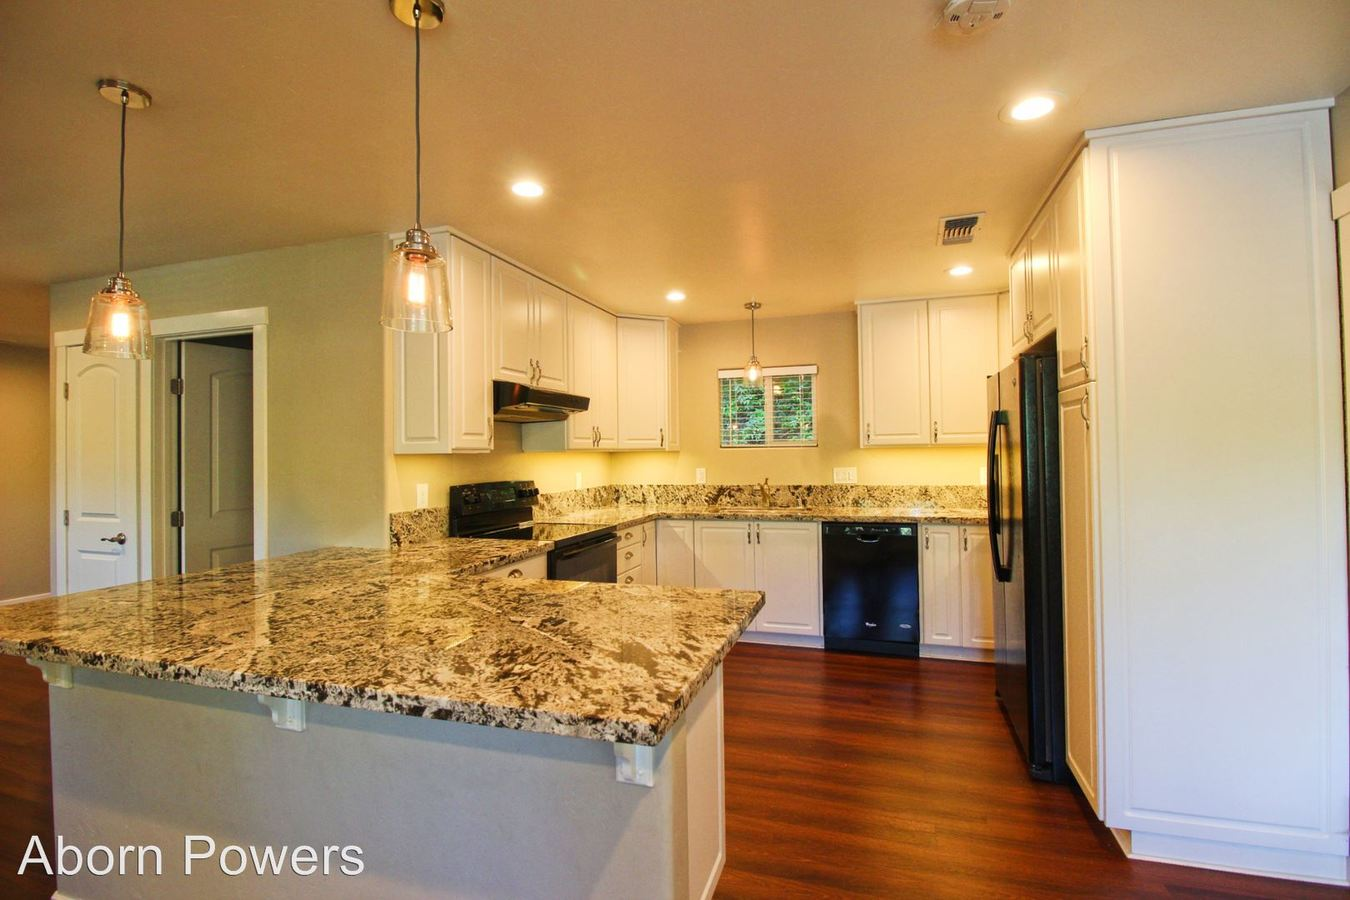 3 Bedrooms 2 Bathrooms Apartment for rent at 2760 Coloma Street in Placerville, CA